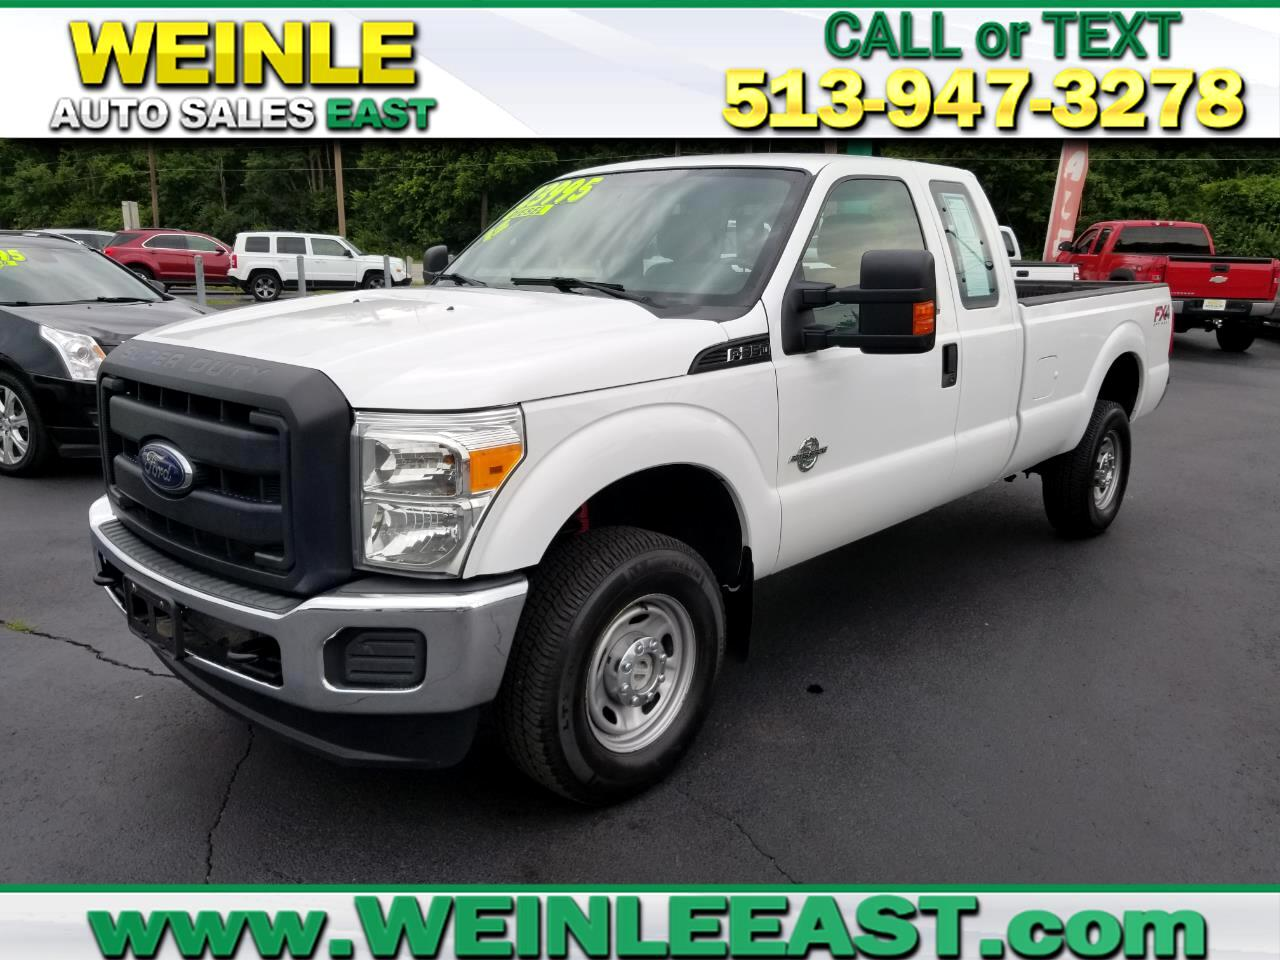 2012 Ford Super Duty F-350 SRW 4WD SUPERCAB 6.7 DIESEL LONGBED CLEAN